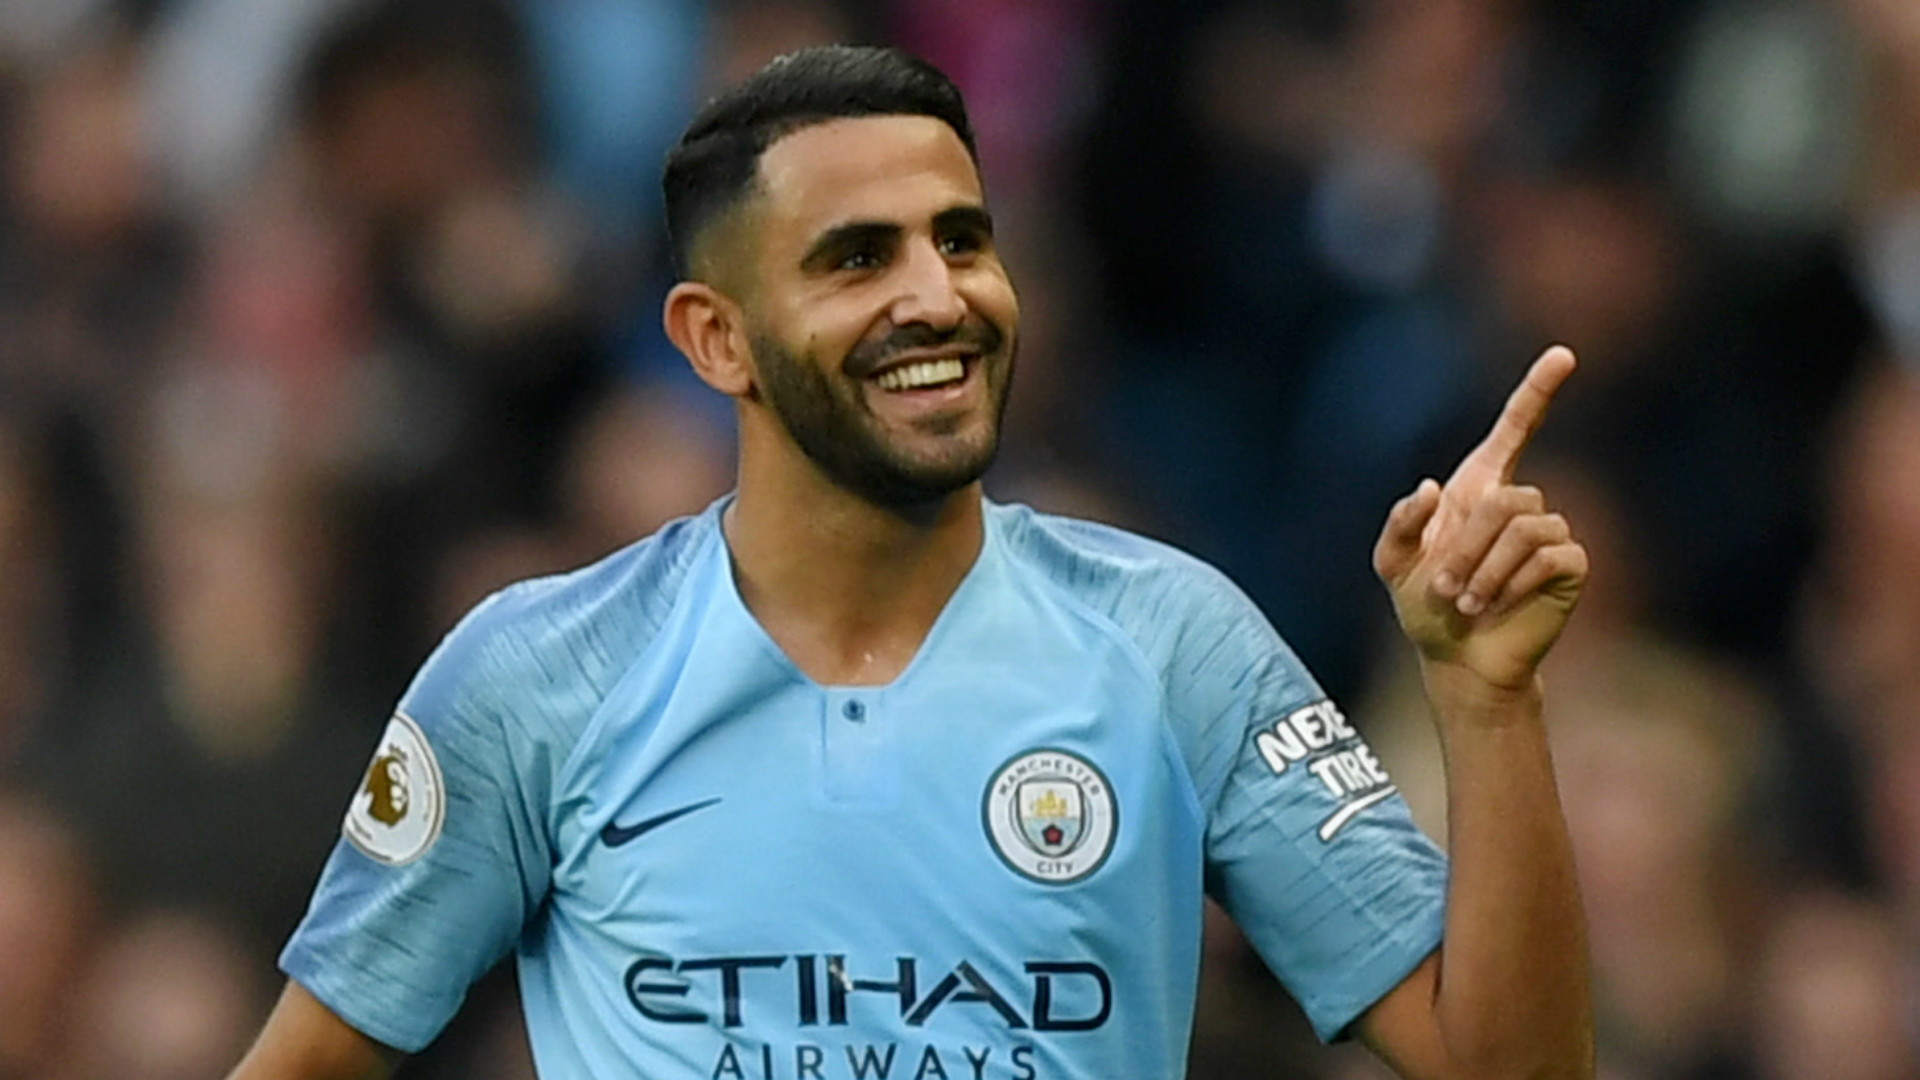 Manchester City transfer news: 'Riyad Mahrez was very determined to leave' - former Leicester assistant discusses winger's move | Goal.com